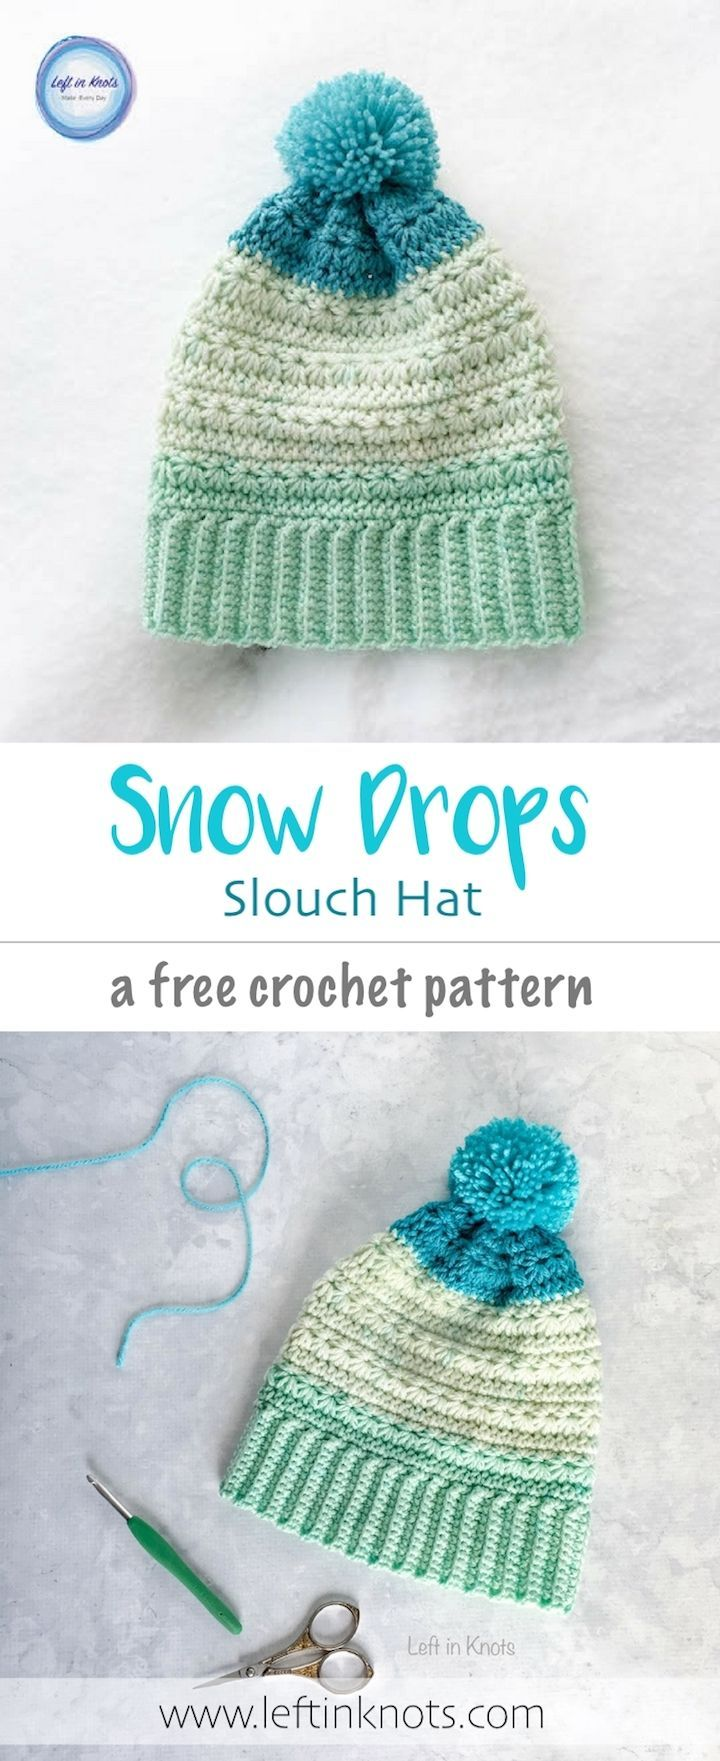 Snow Drops Slouch Hat Free Crochet Pattern | Gorros, Tejido y Ganchillo